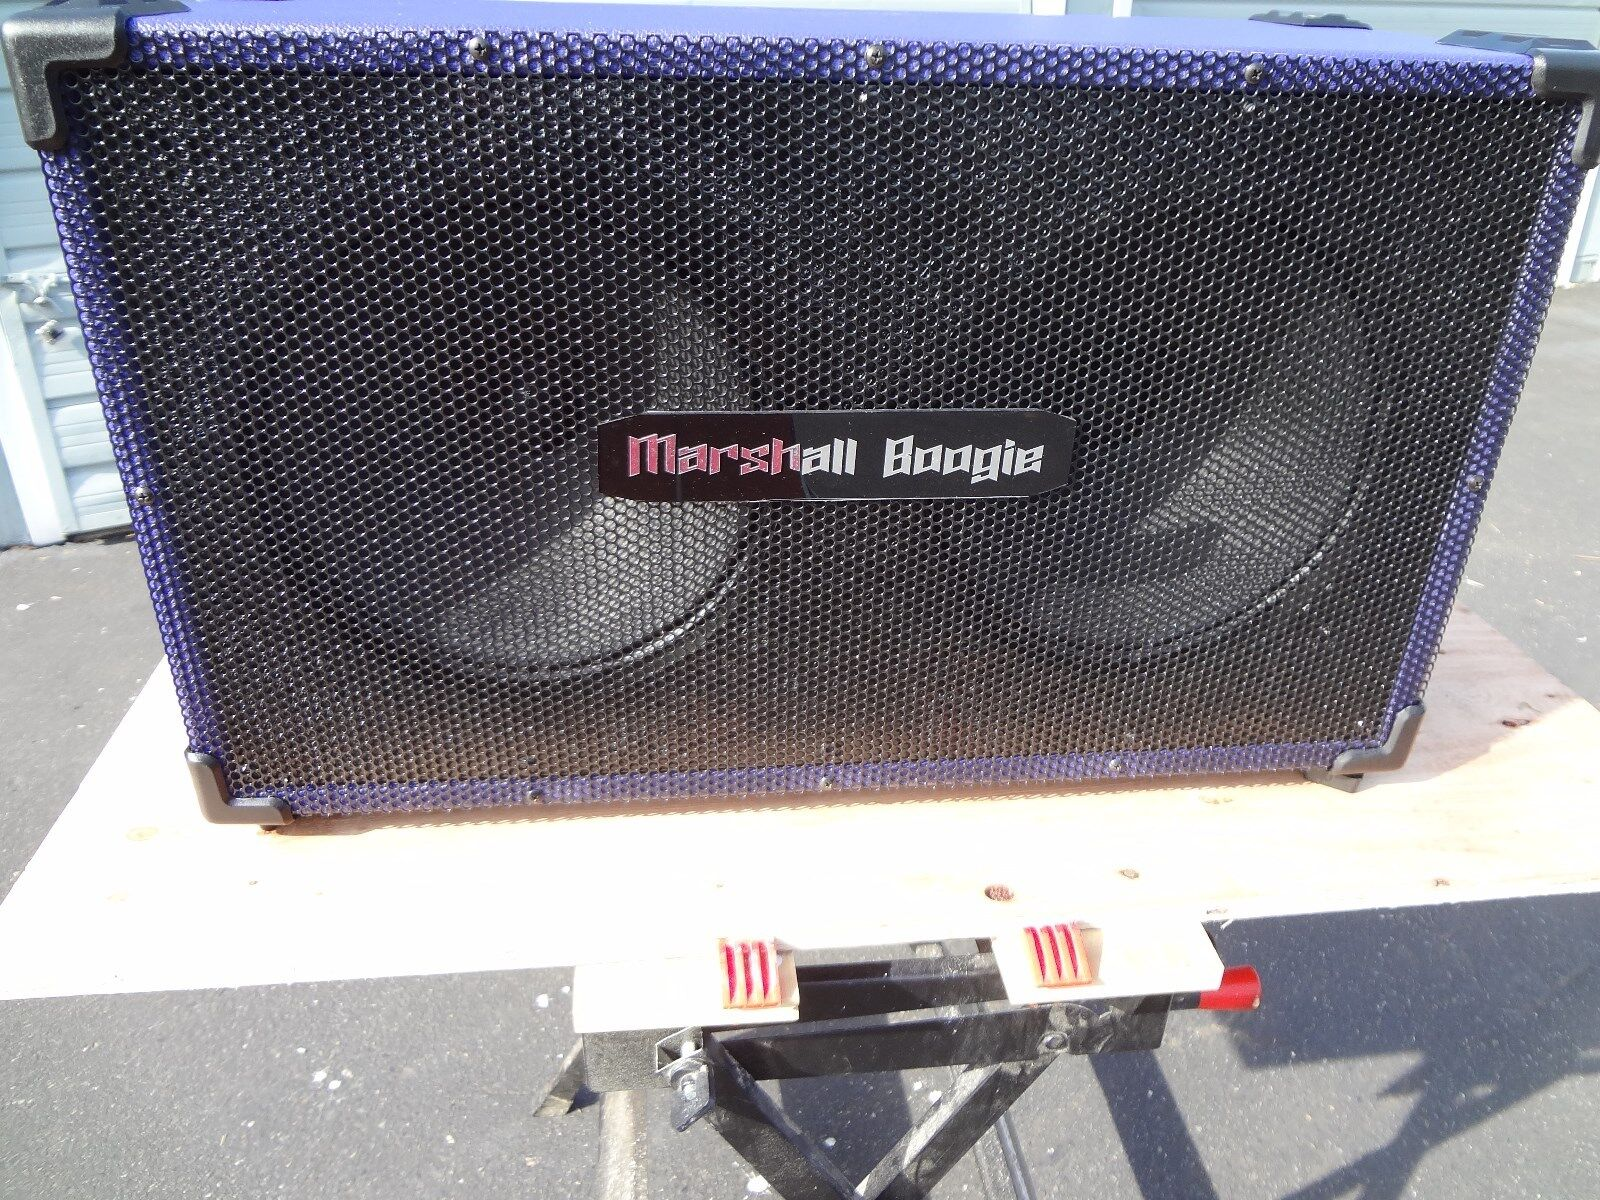 2X12 Cabinet Marshall Boogie Celestion WGS speakers lila or schwarz